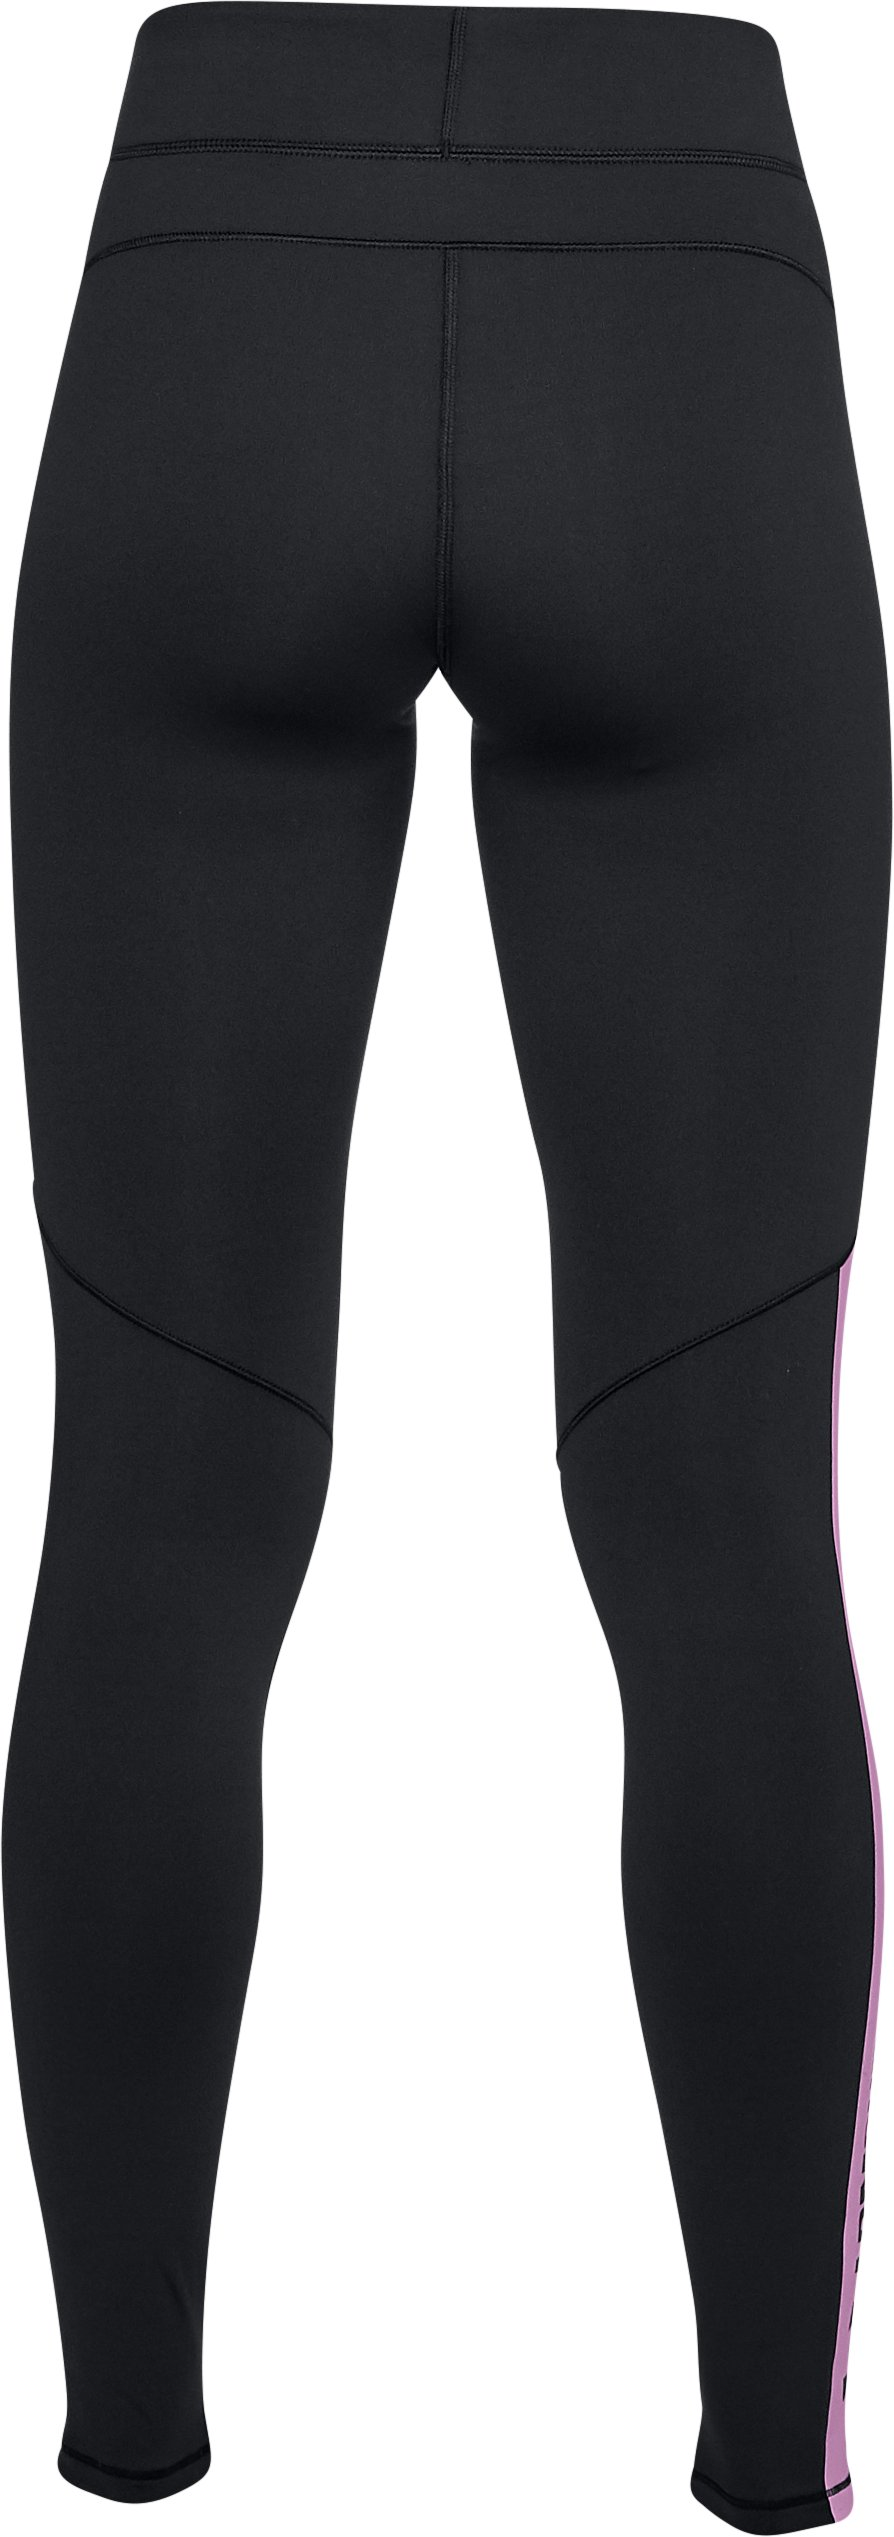 Women's ColdGear® Armour Graphic Leggings, Black ,